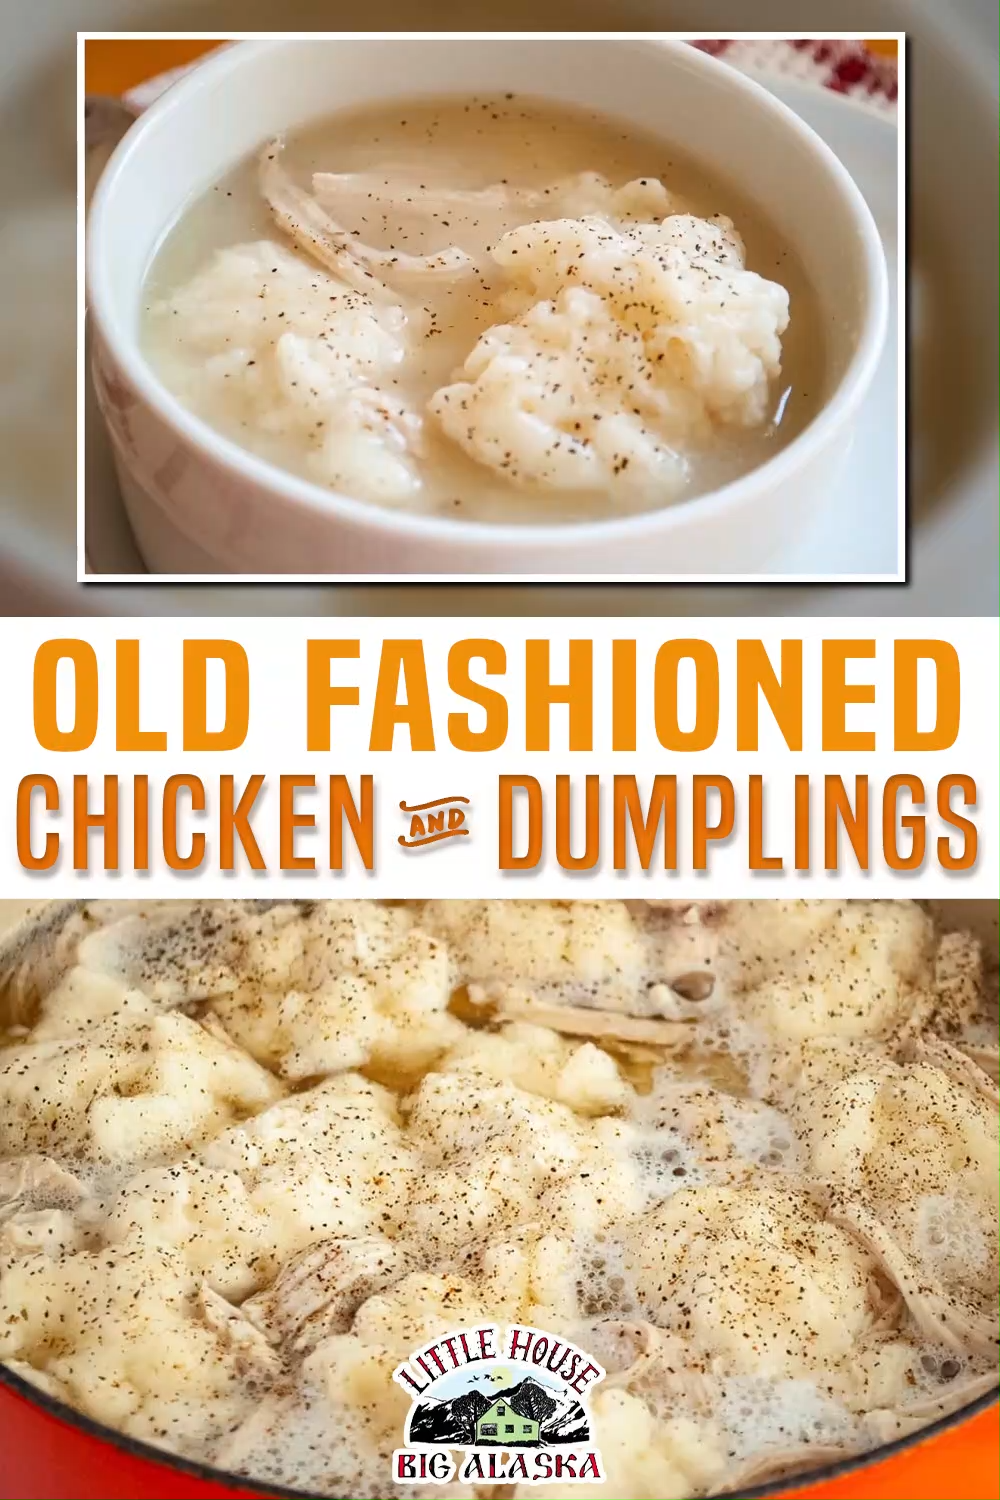 Old Fashioned Chicken and Dumplings Recipe!